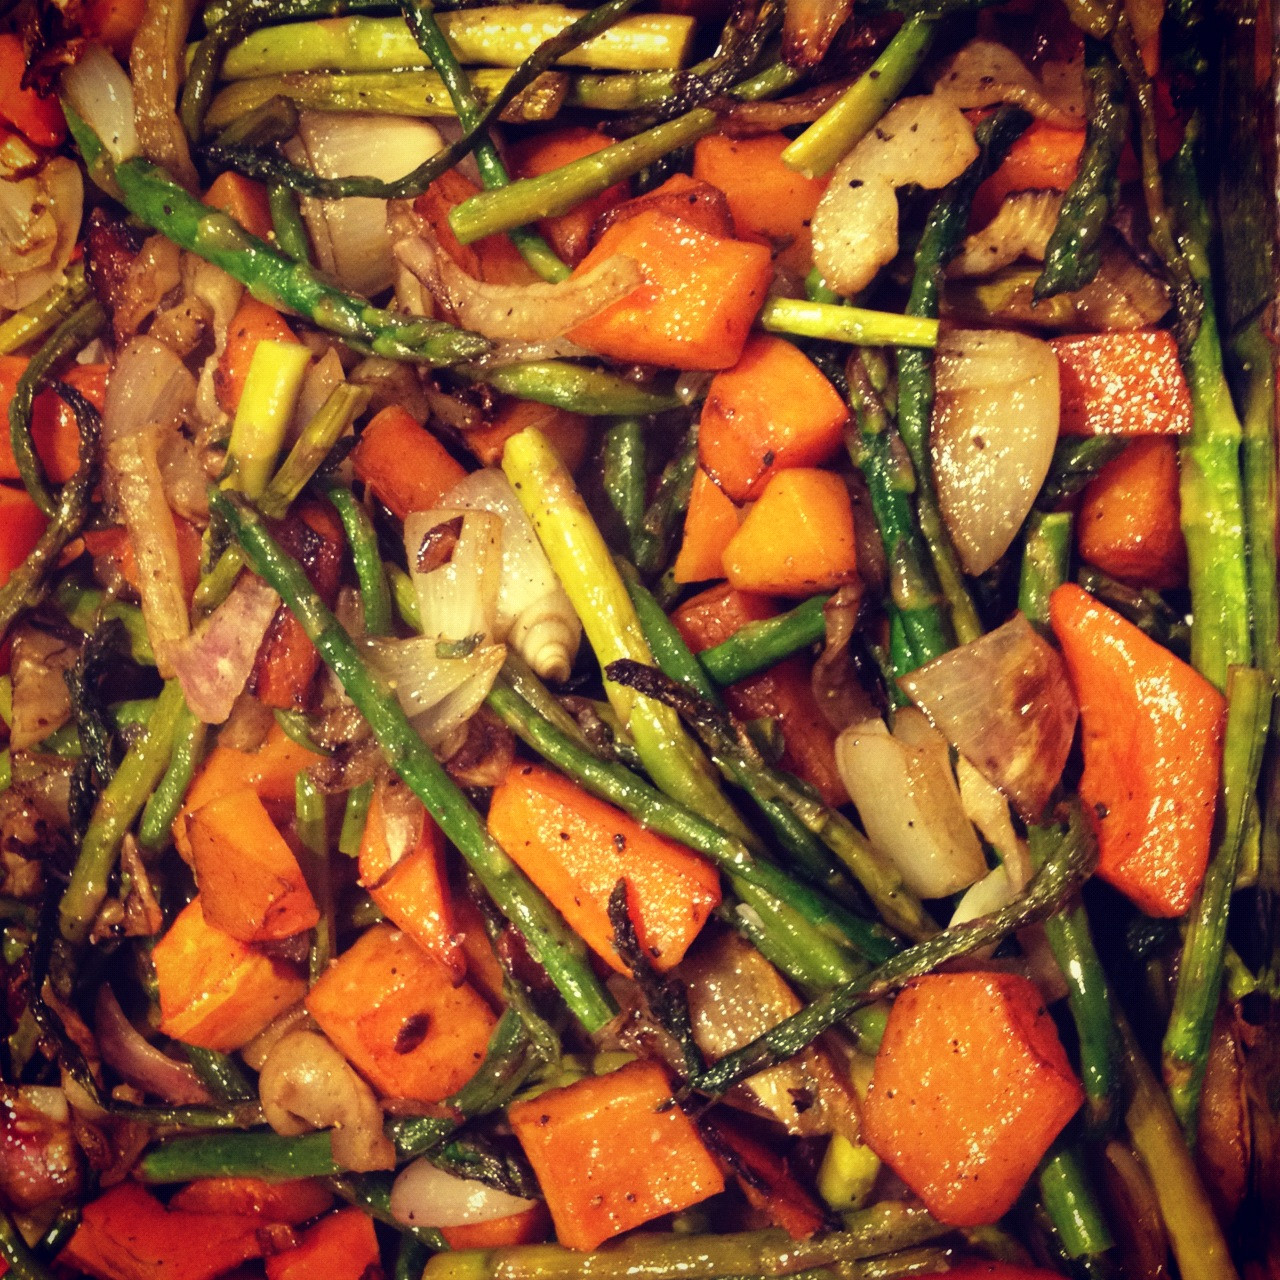 Roasted Vegetables Recipes  Happy New Year My New Years' Resolutions & Roasted